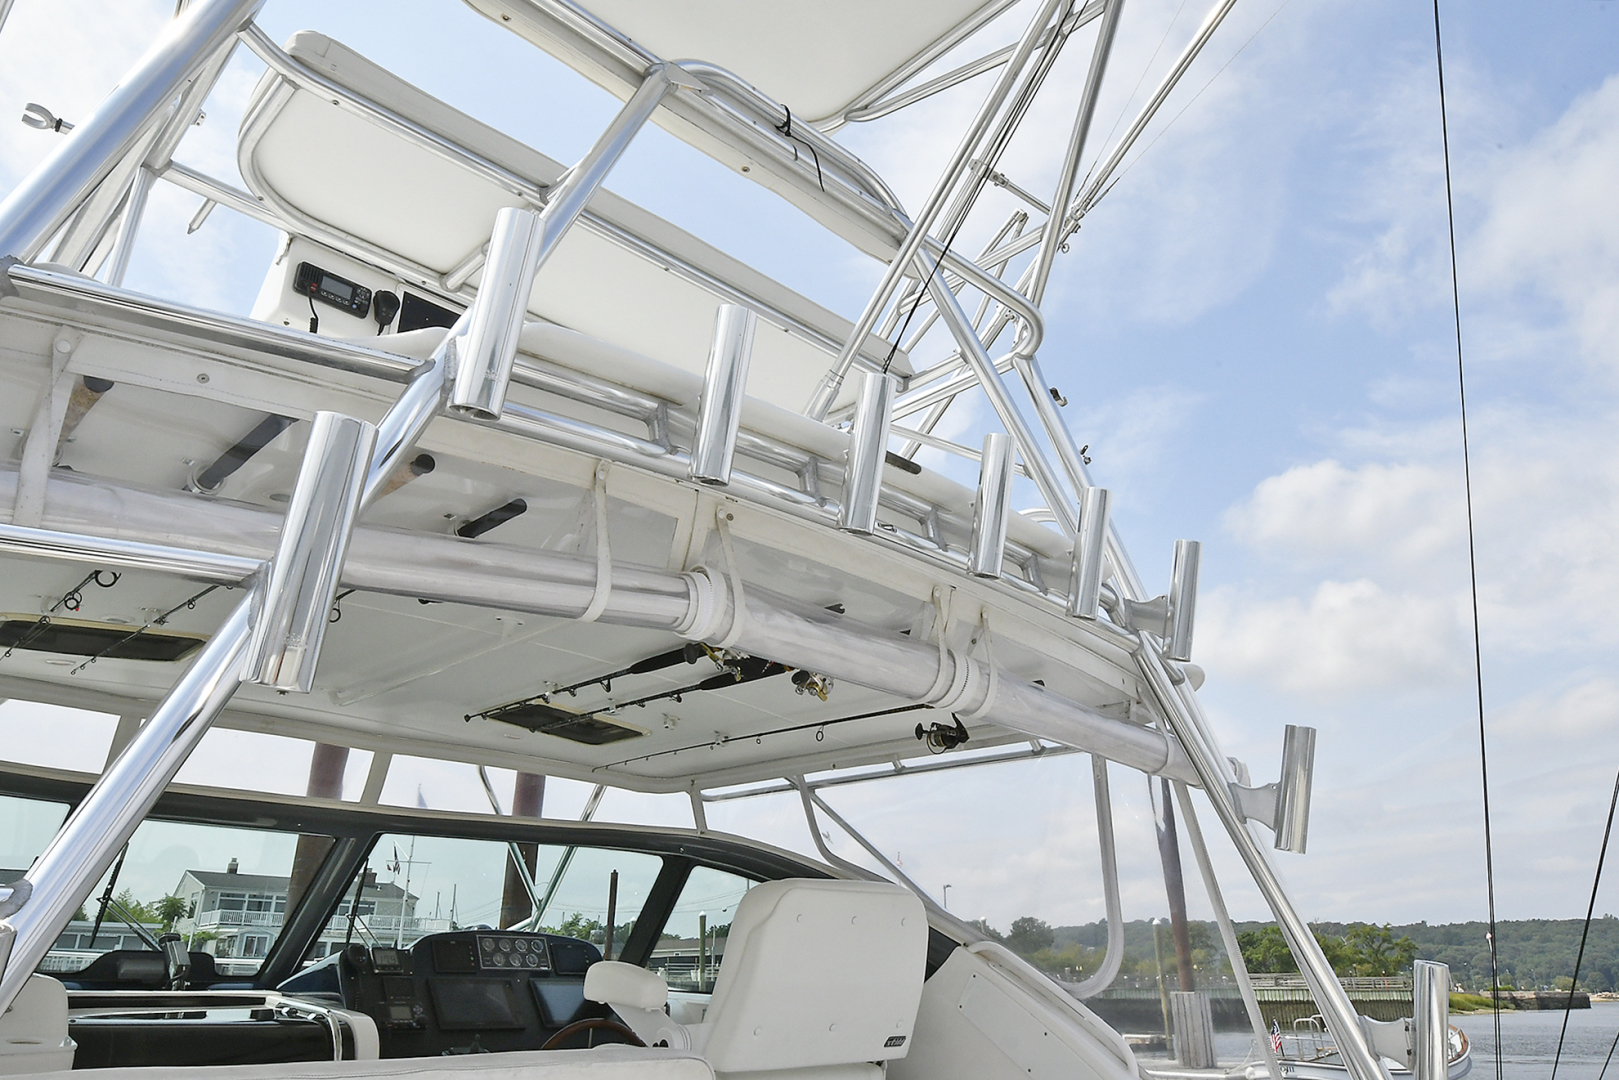 Tiara-3800 Open 2003-Catch 22 Oyster Bay-New York-United States-Rod Holders-1224911 | Thumbnail